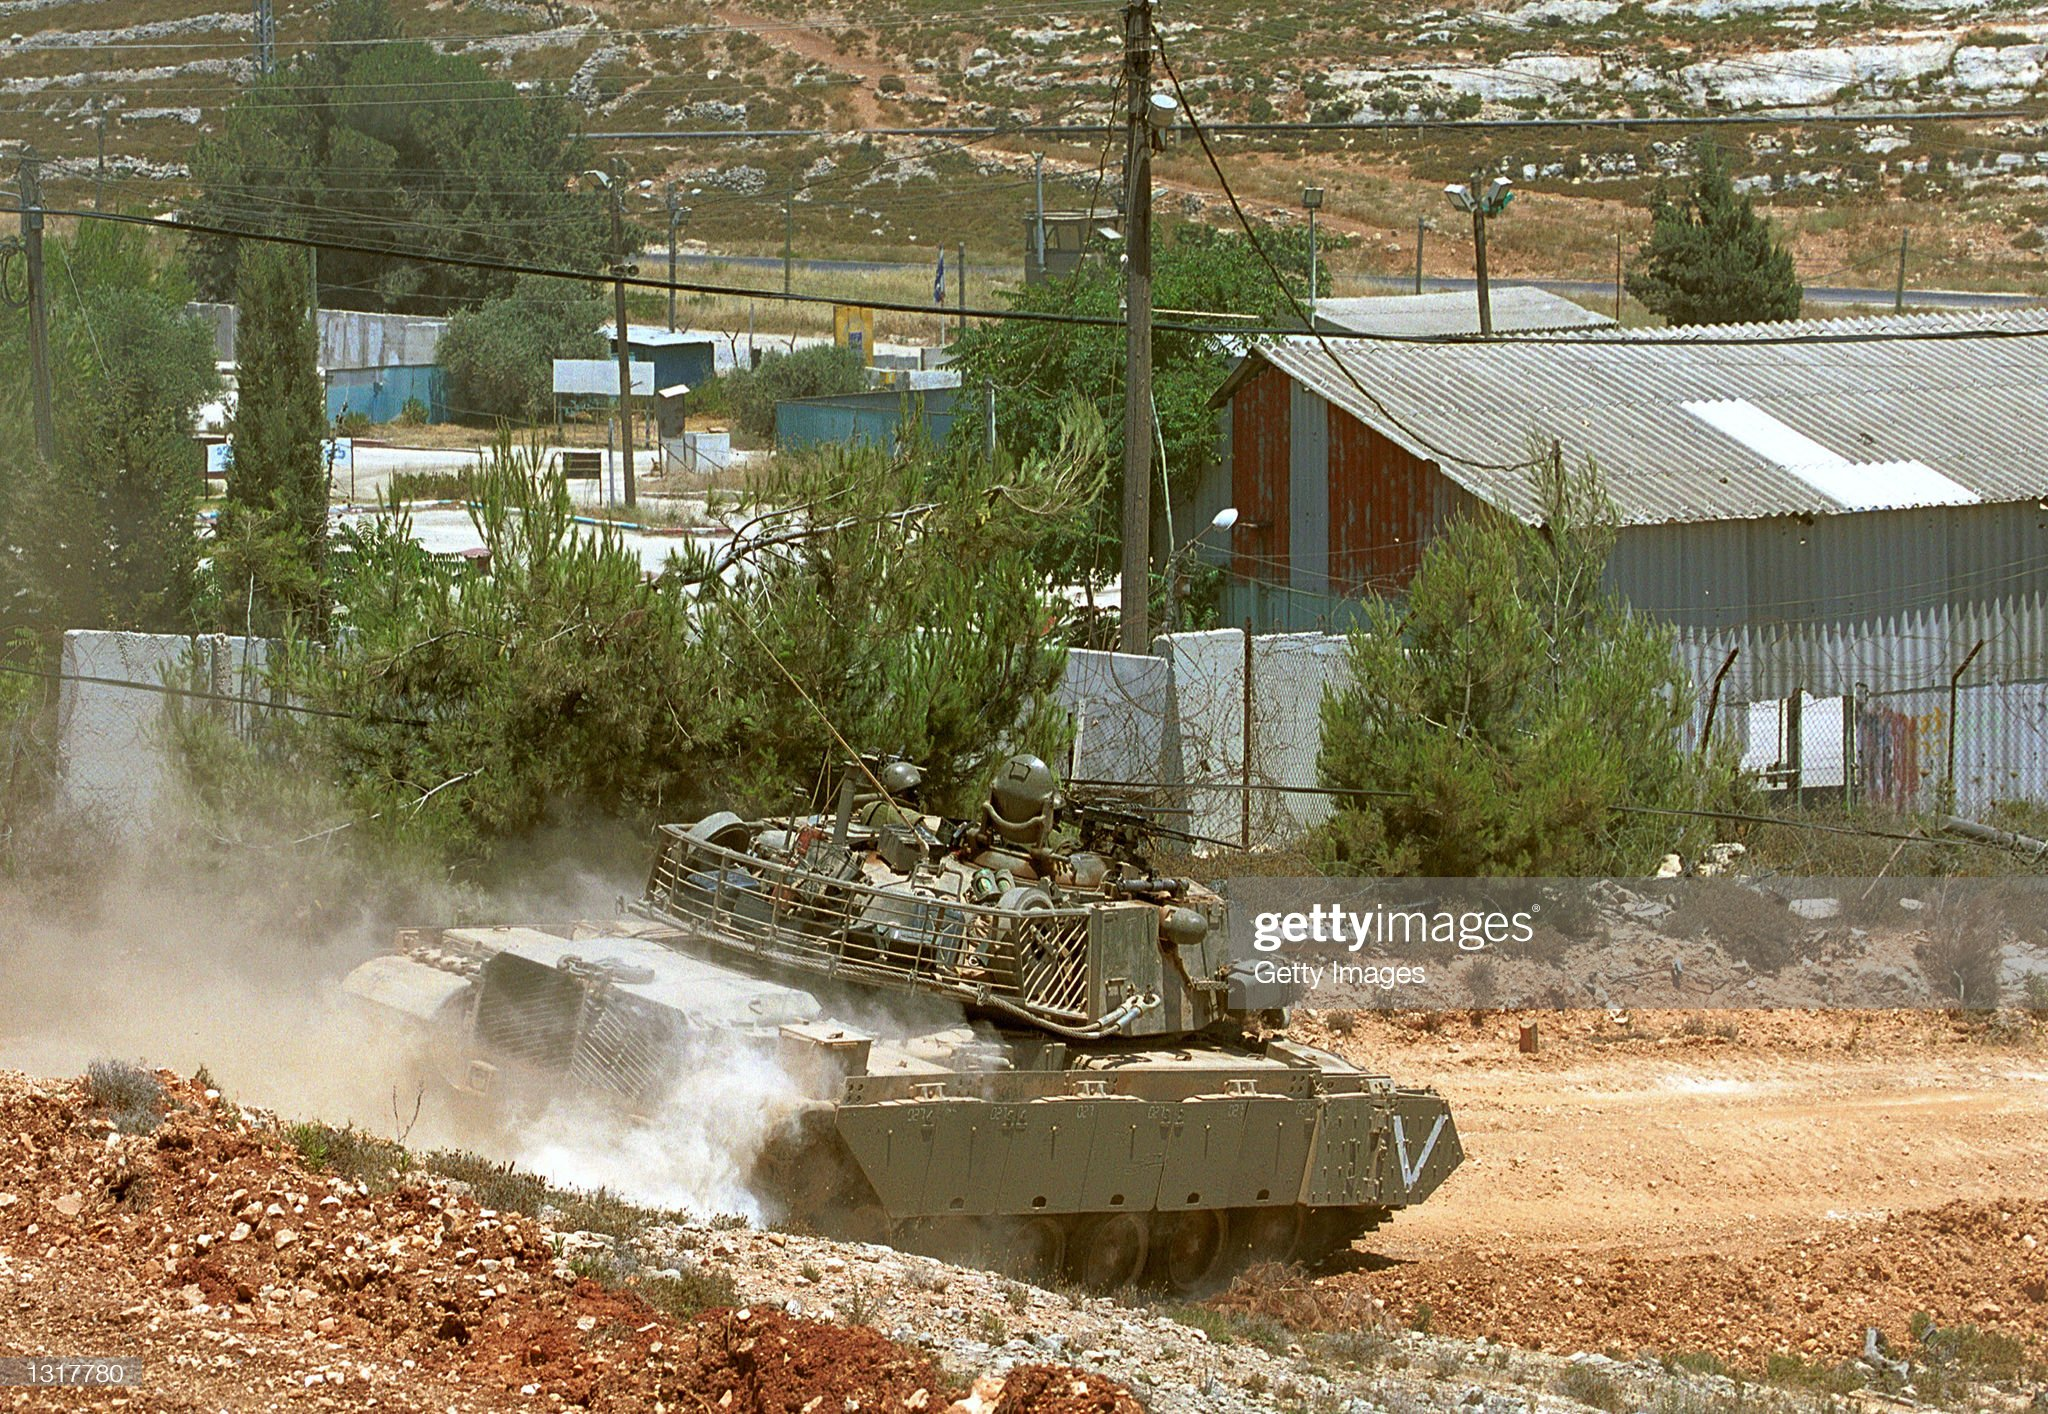 https://media.gettyimages.com/photos/an-israeli-army-patton-tank-returns-to-base-from-a-position-june-14-picture-id1317780?s=2048x2048